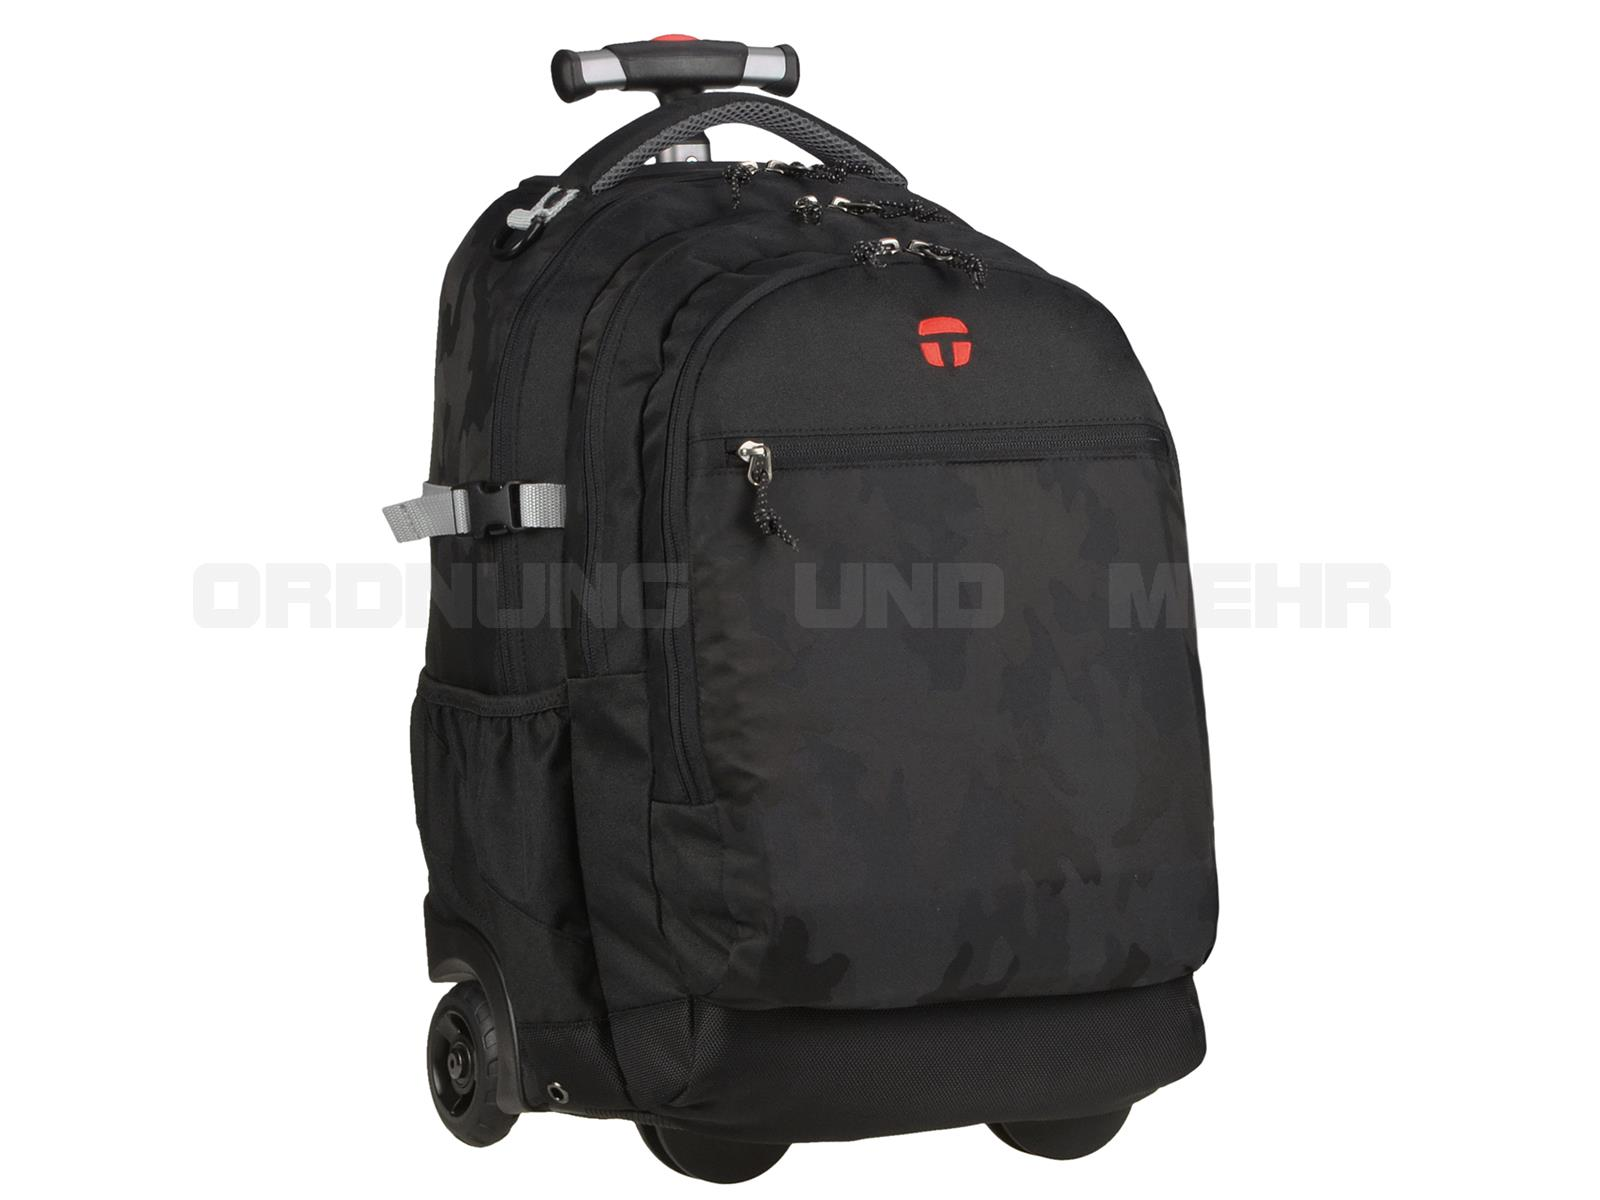 Take it Easy Rucksack Trolley CAMOUFLAGE BLACK in schwarz 28045-495-001